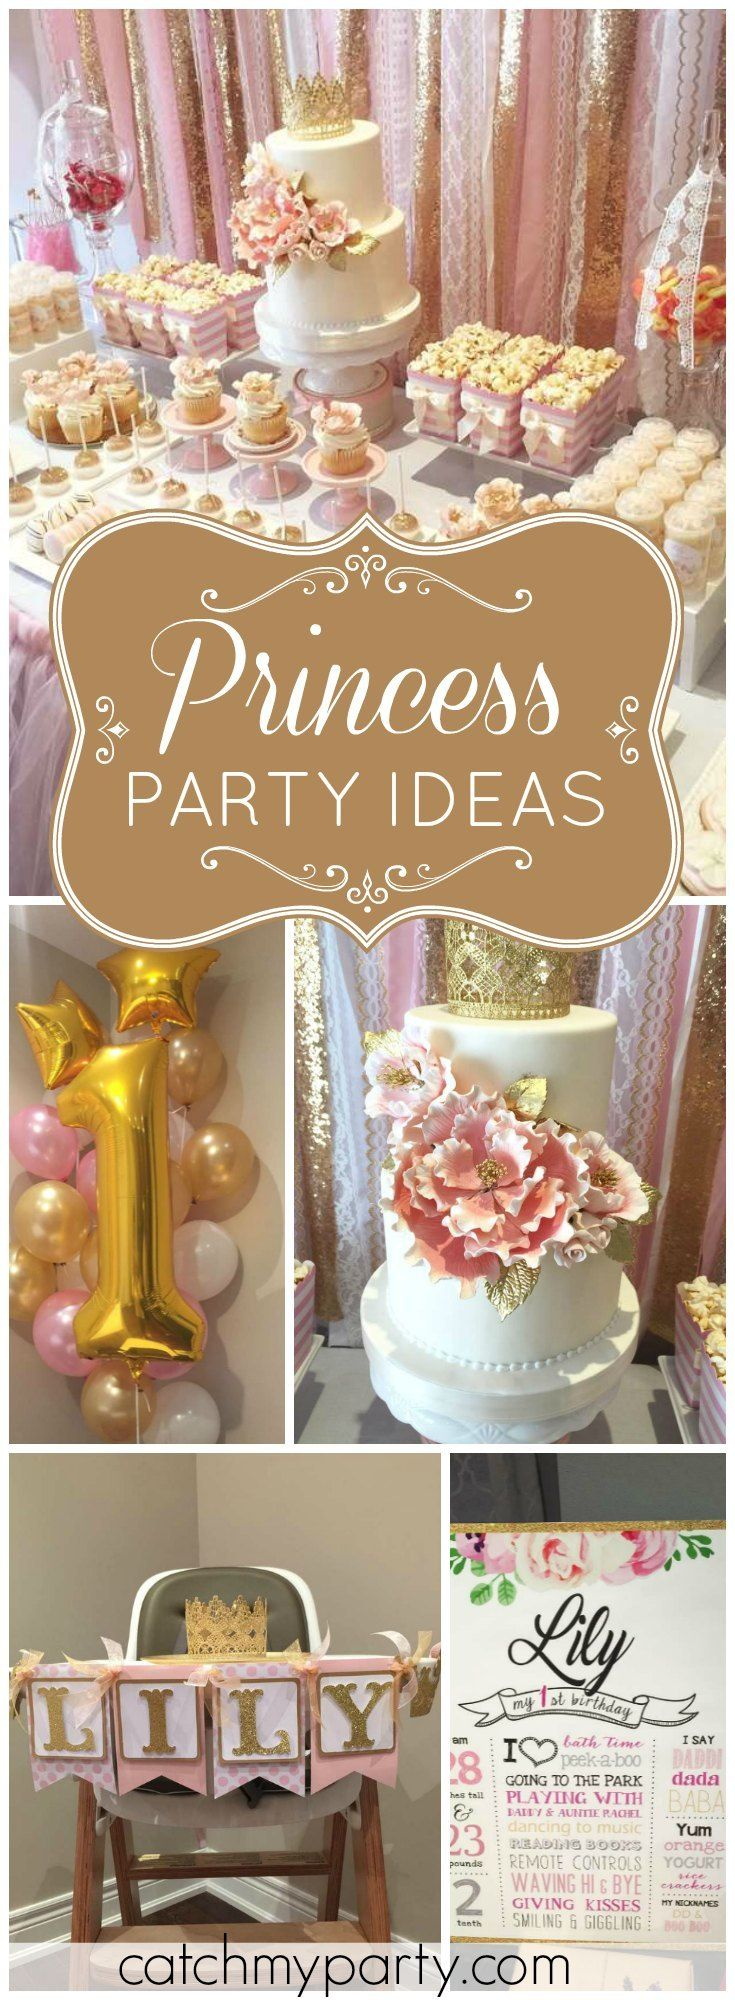 You won't believe this gorgeous pink and gold princess birthday party! See more party ideas at Catchmyparty.com!